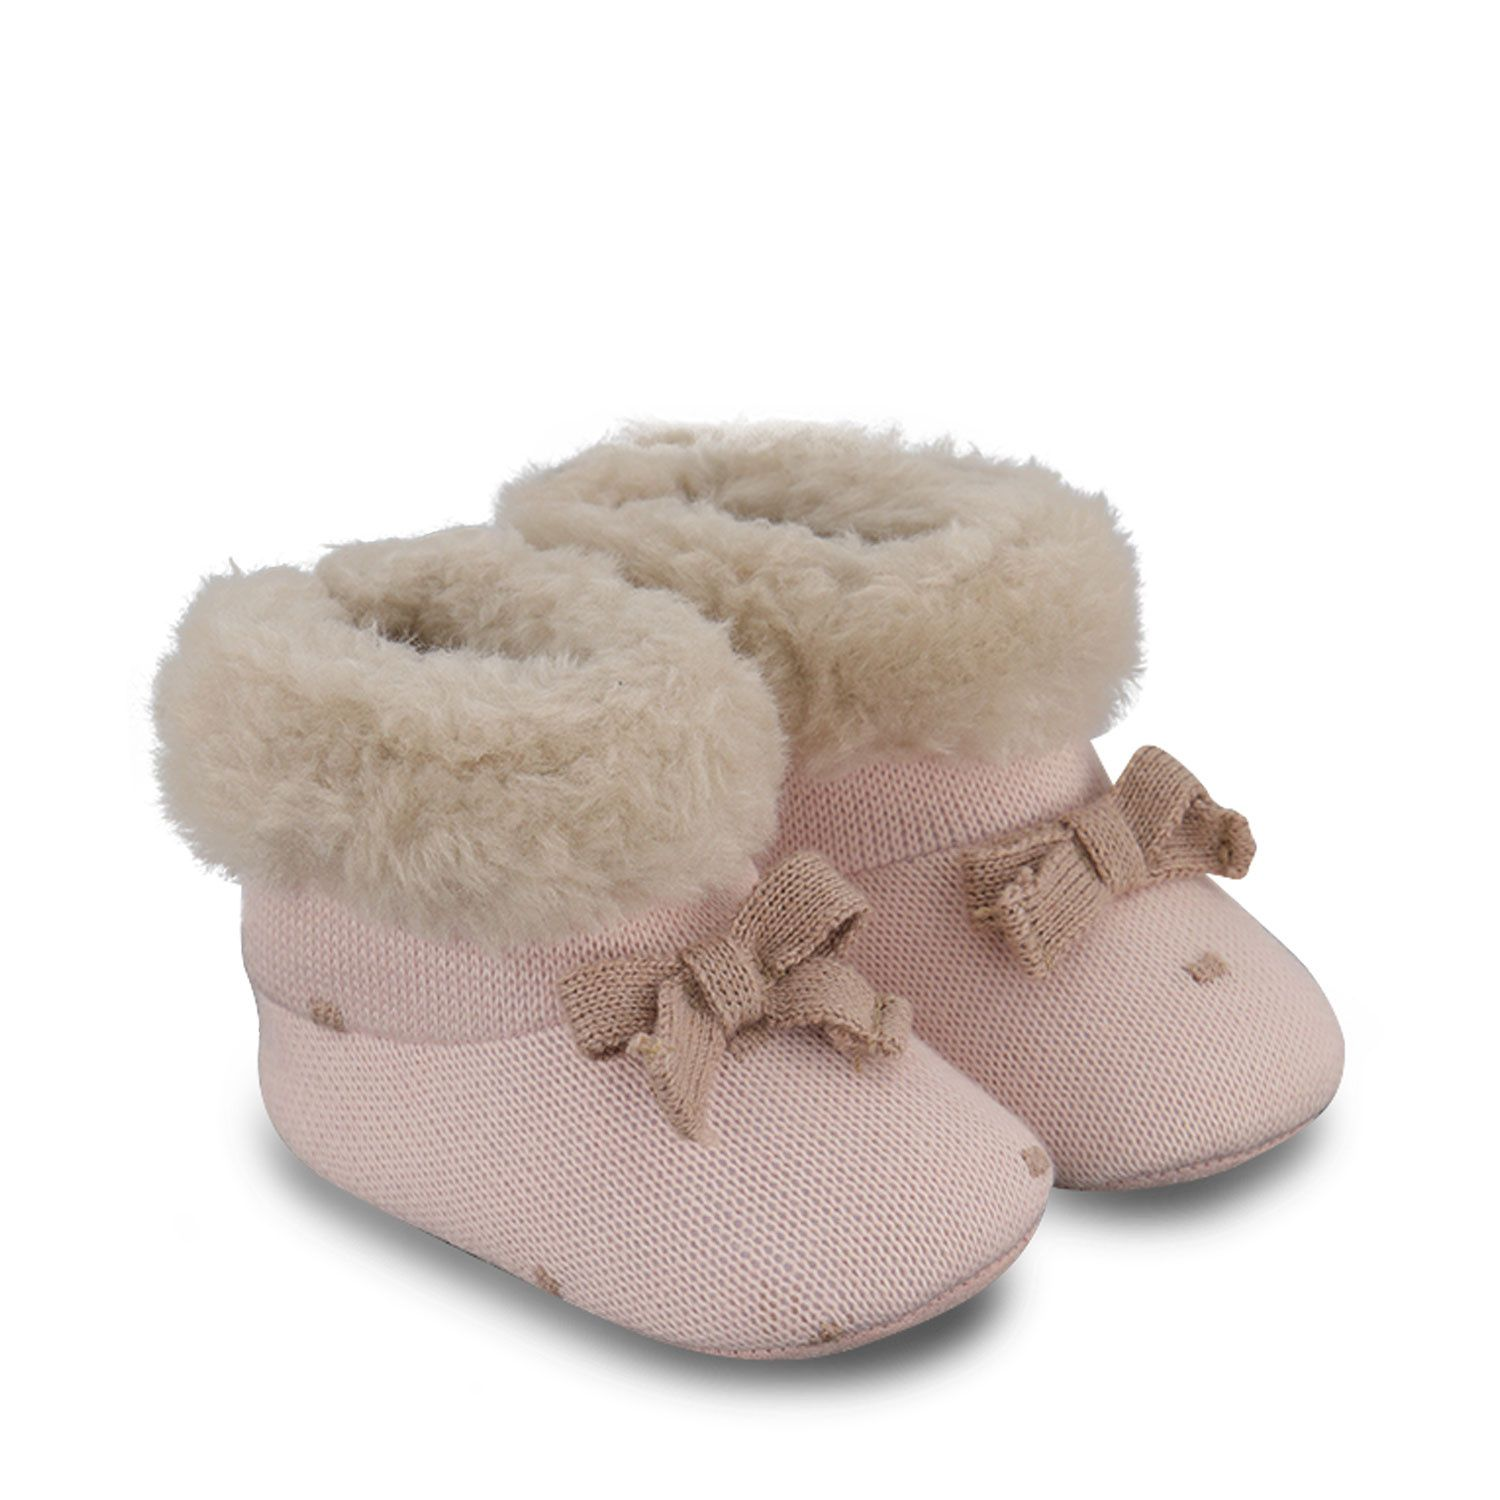 Picture of Mayoral 9453 baby shoes light pink